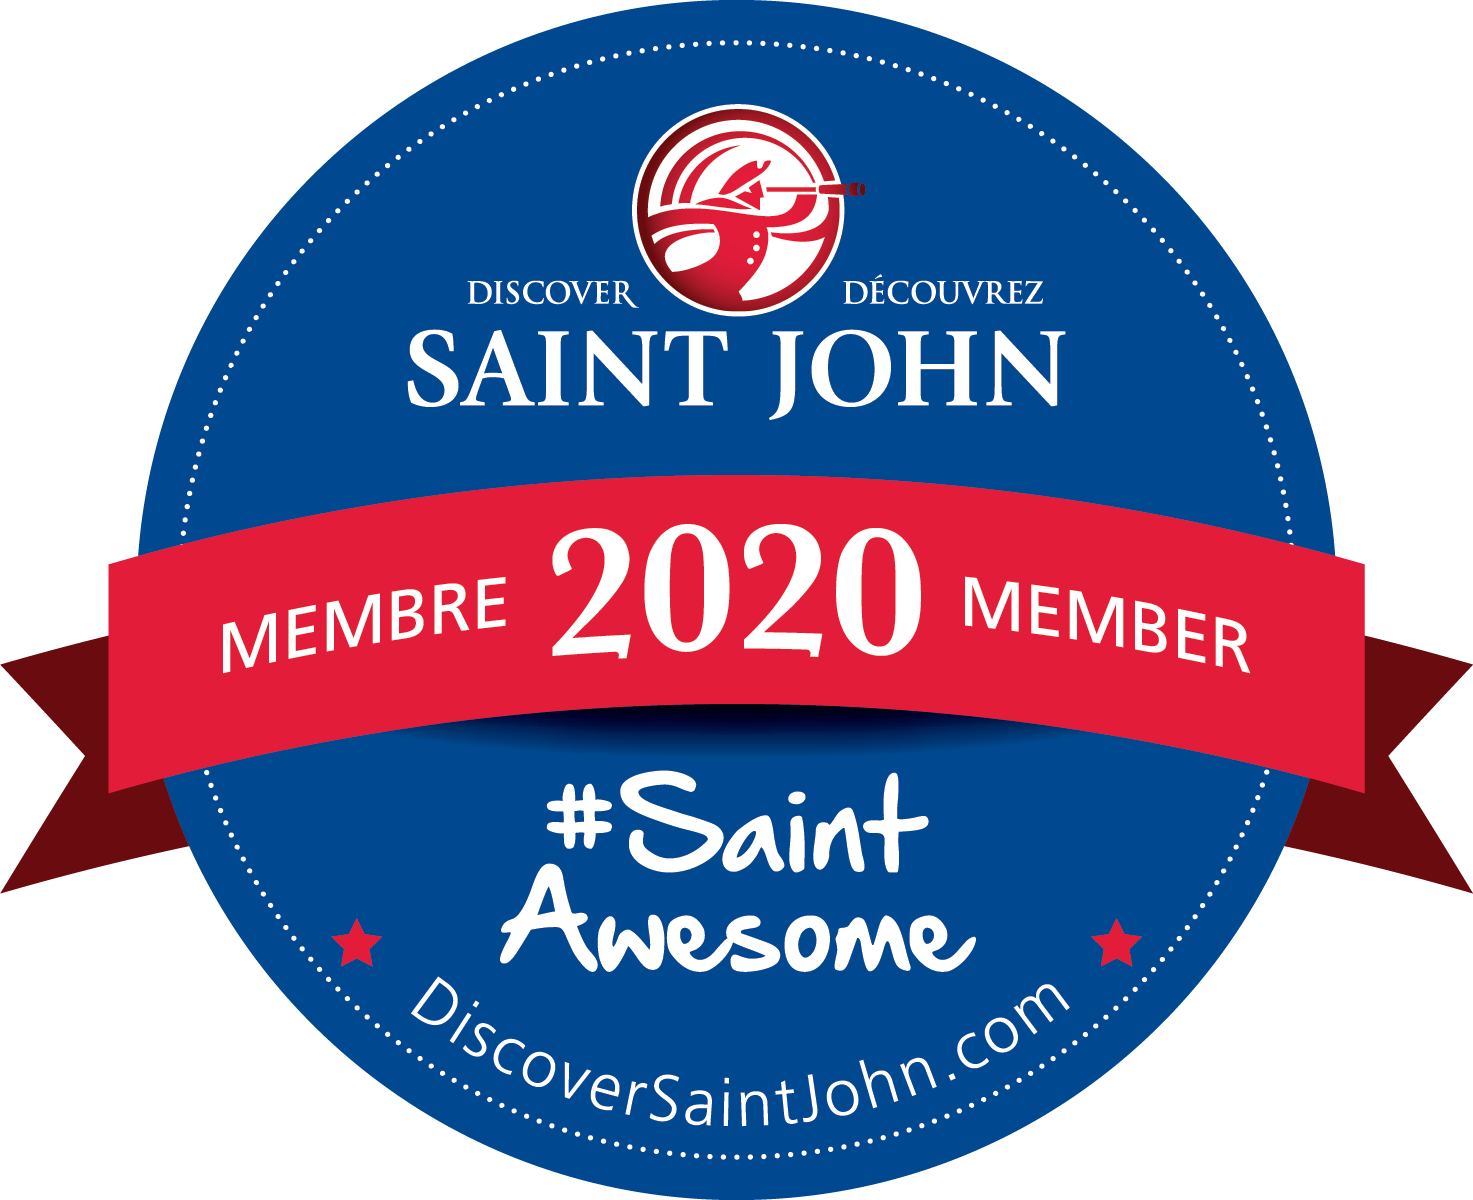 2020 Membership Decal